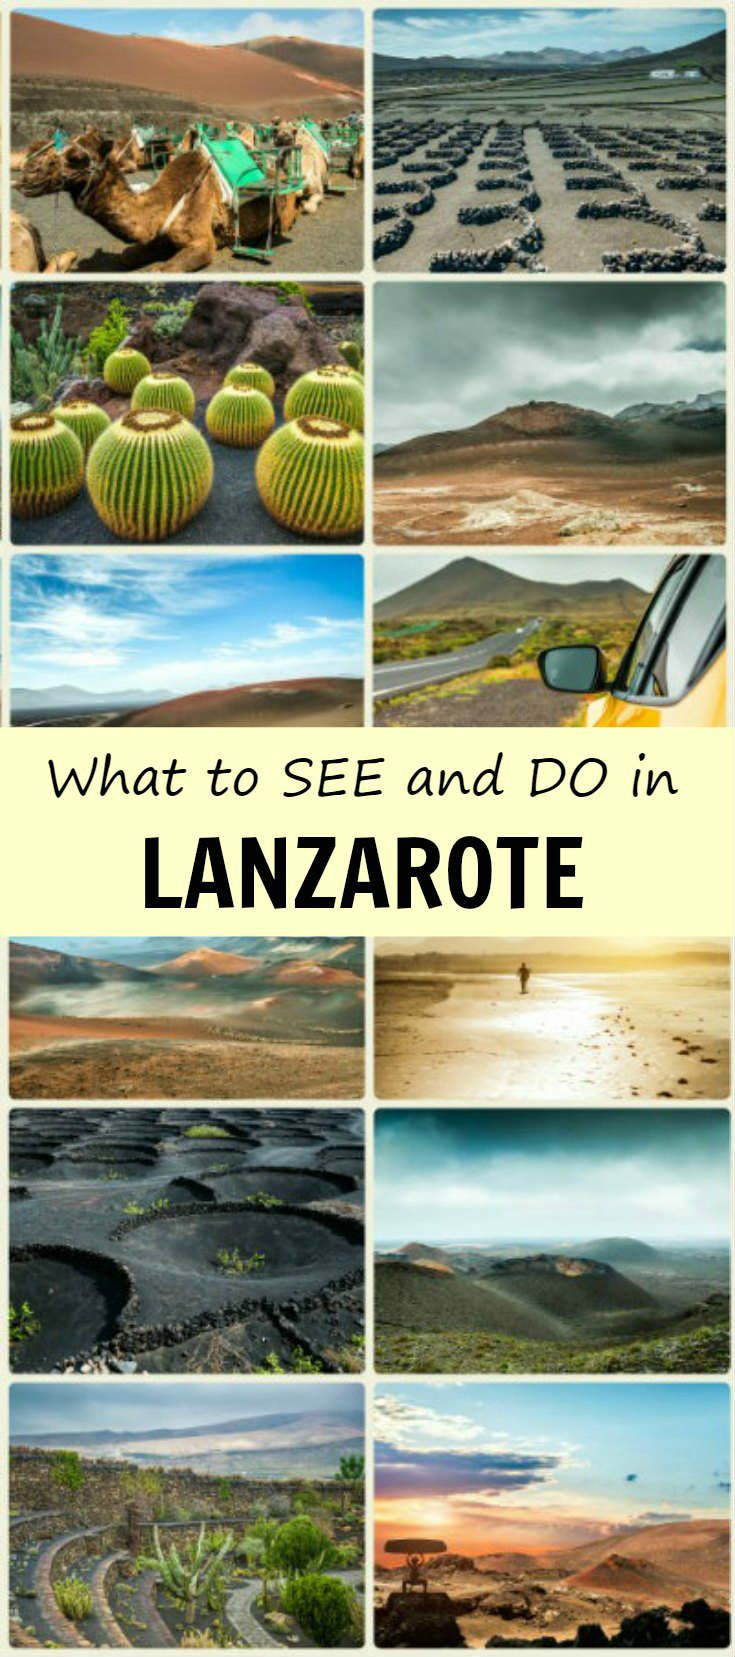 The Very Best Things to See and Do in Lanzarote Spain